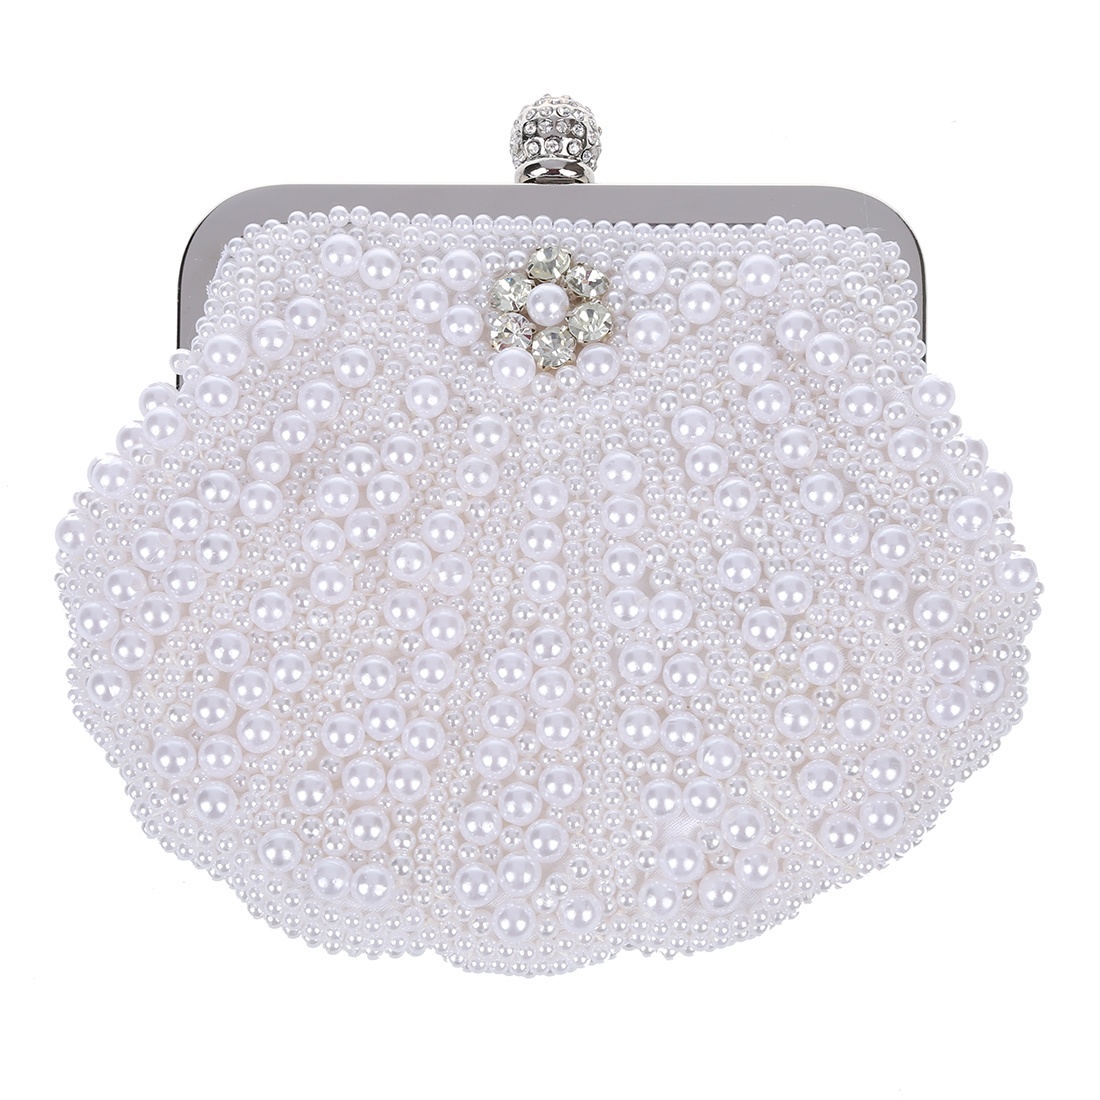 White Clutch Handbag Promotion-Shop for Promotional White Clutch ...